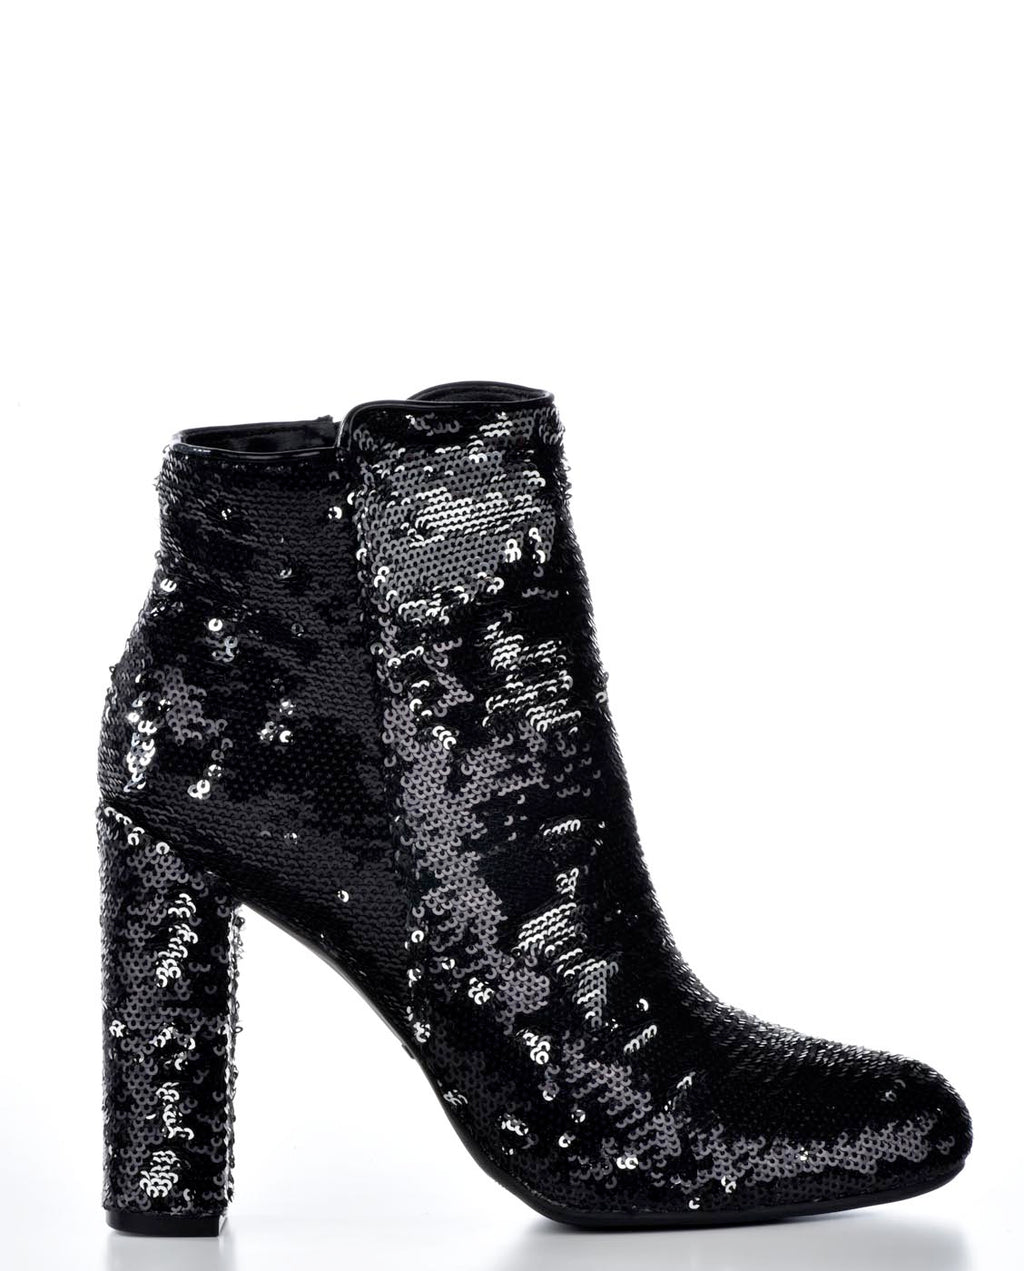 Sequin Bootie - Fashion You Up